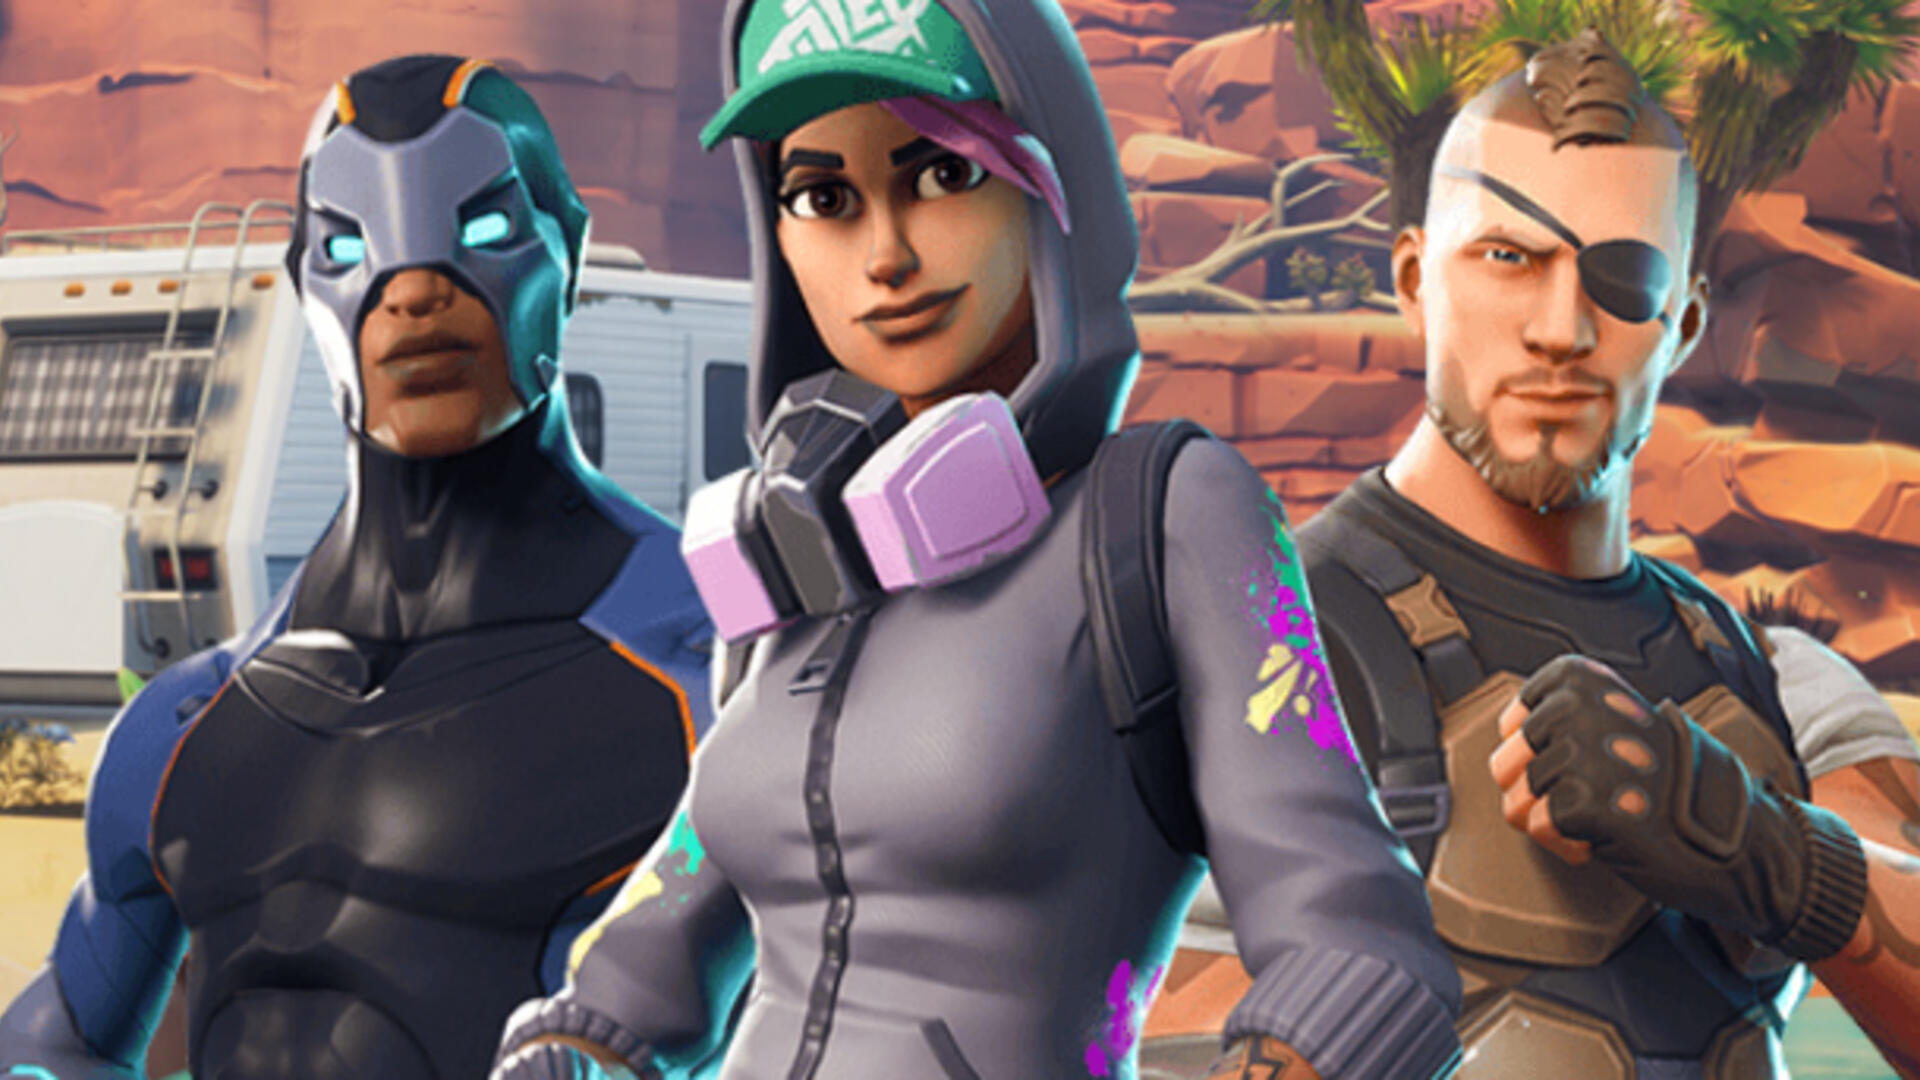 Fortnite Season 5: What We're Expecting From the Upcoming Season of Fortnite